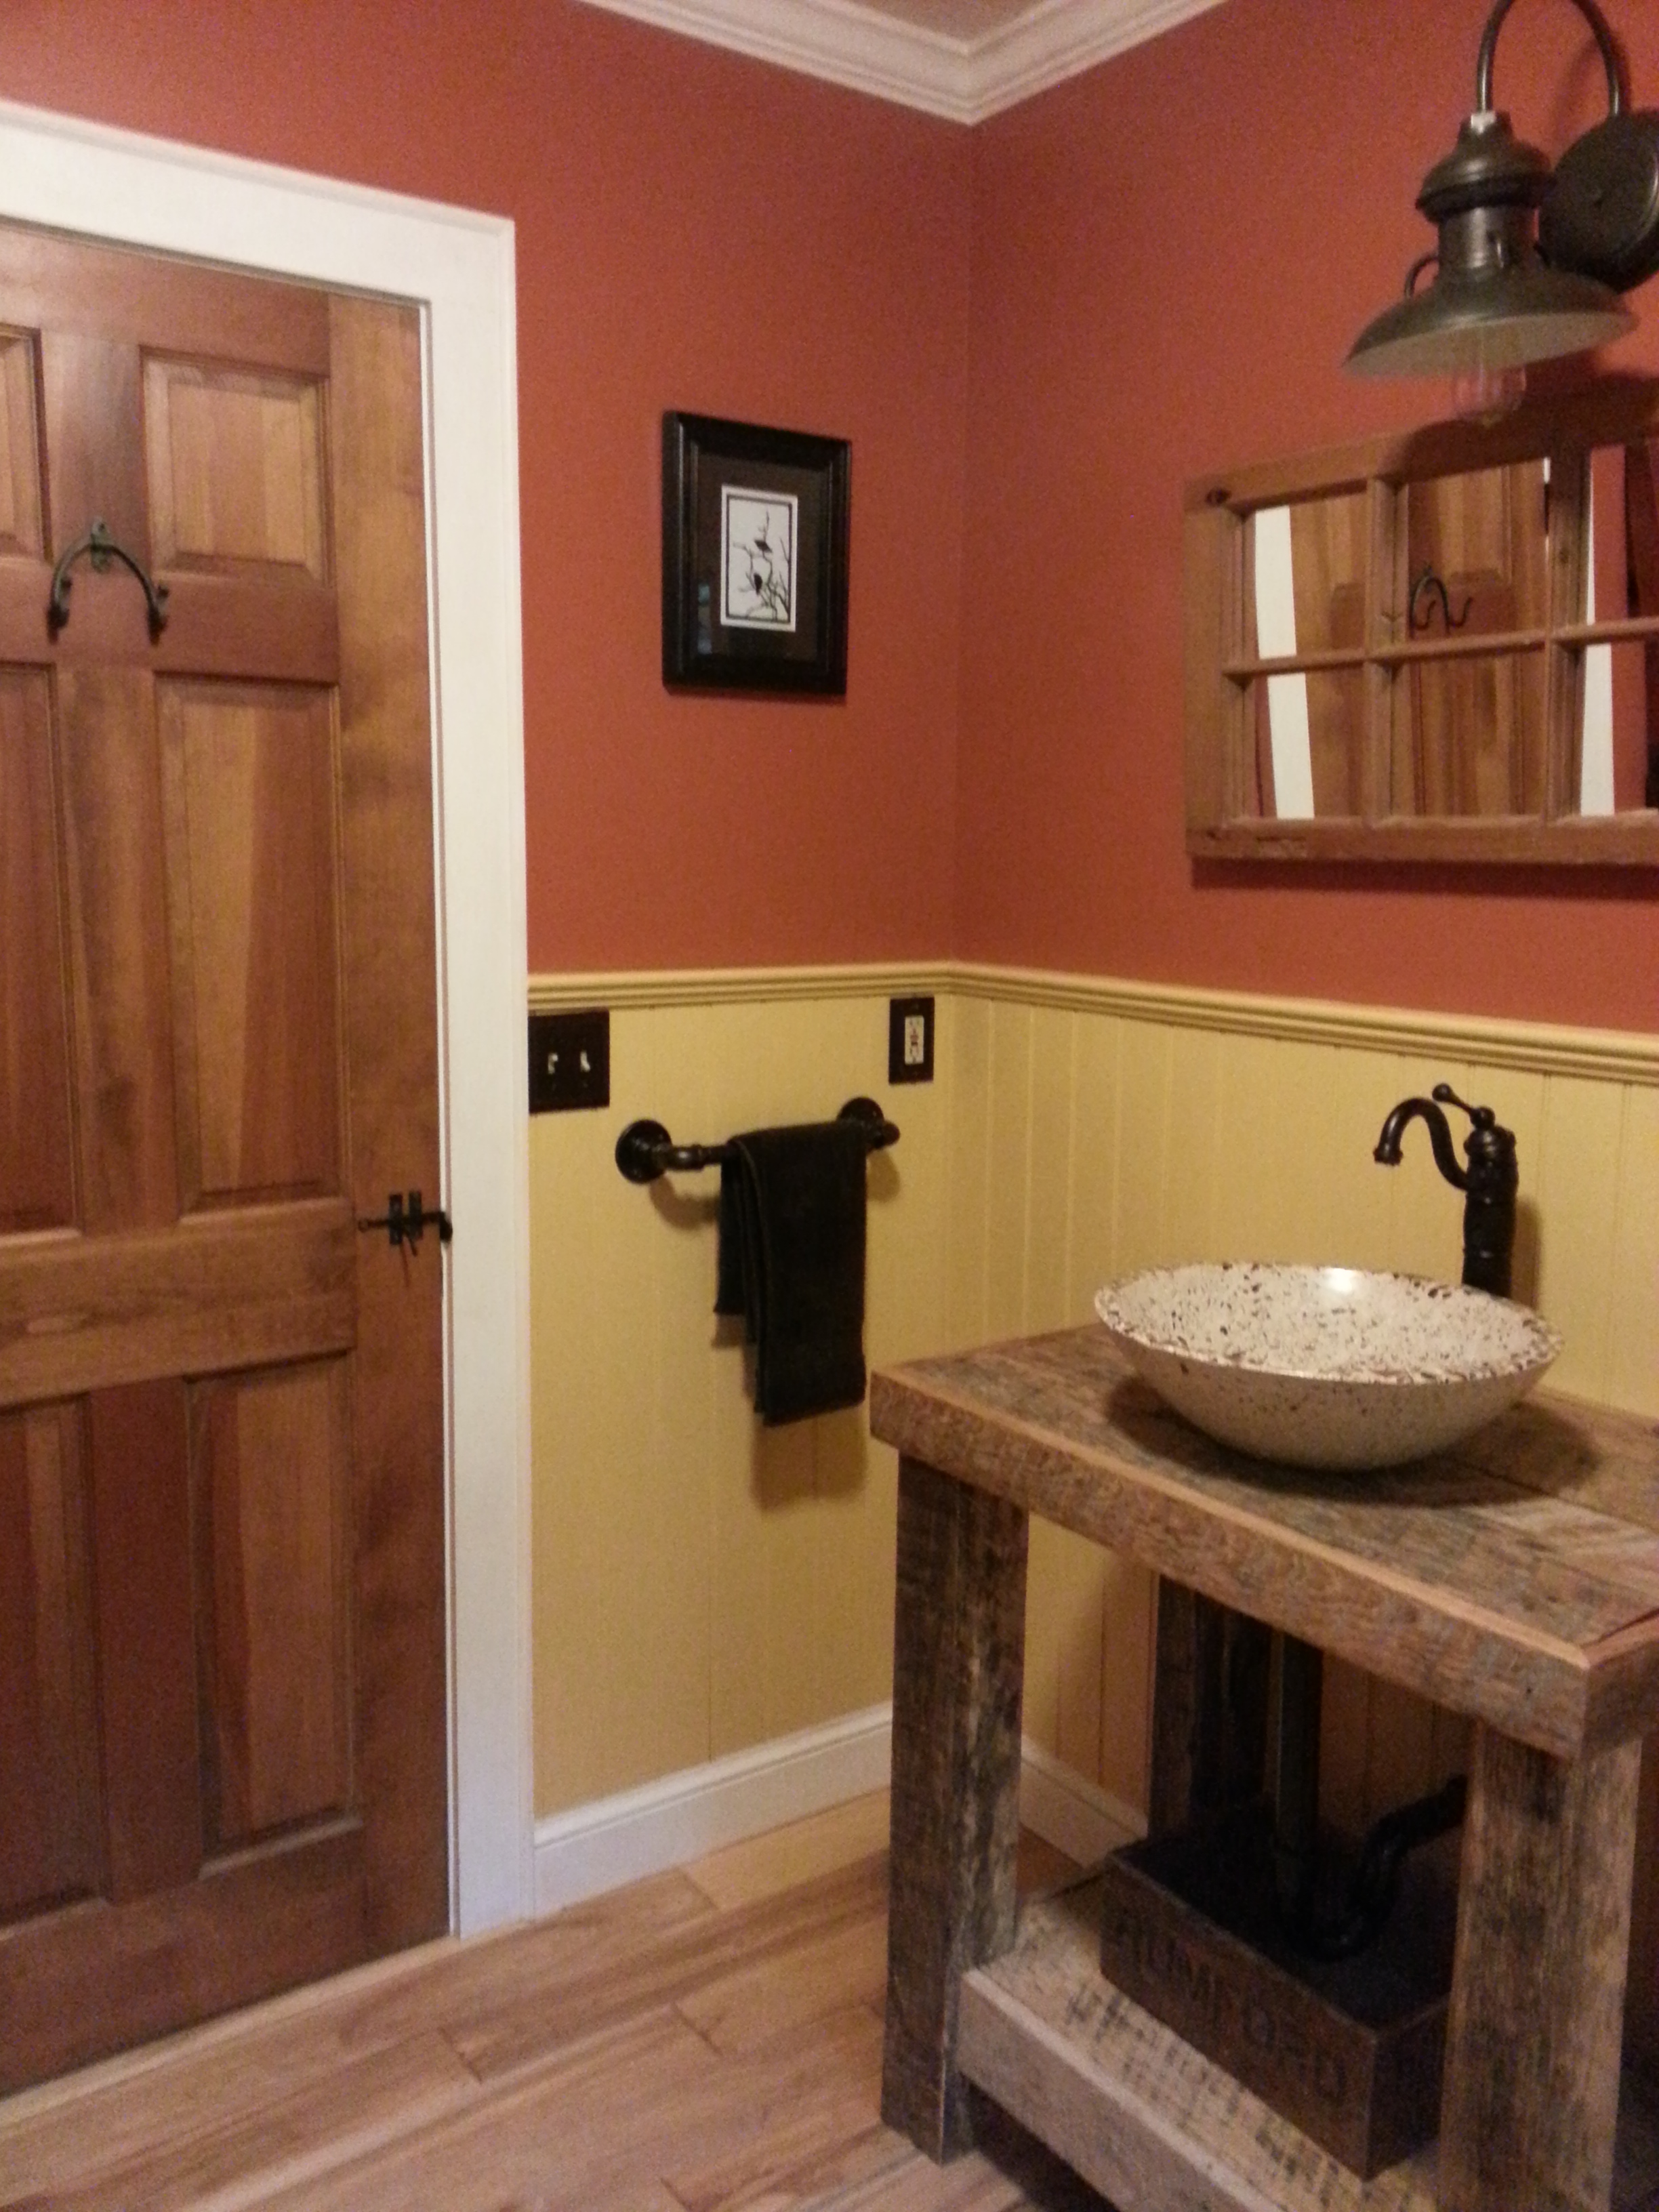 Barn Wall Sconce Adds a Touch of Country to Bathroom ... on Rural Bathroom  id=59300